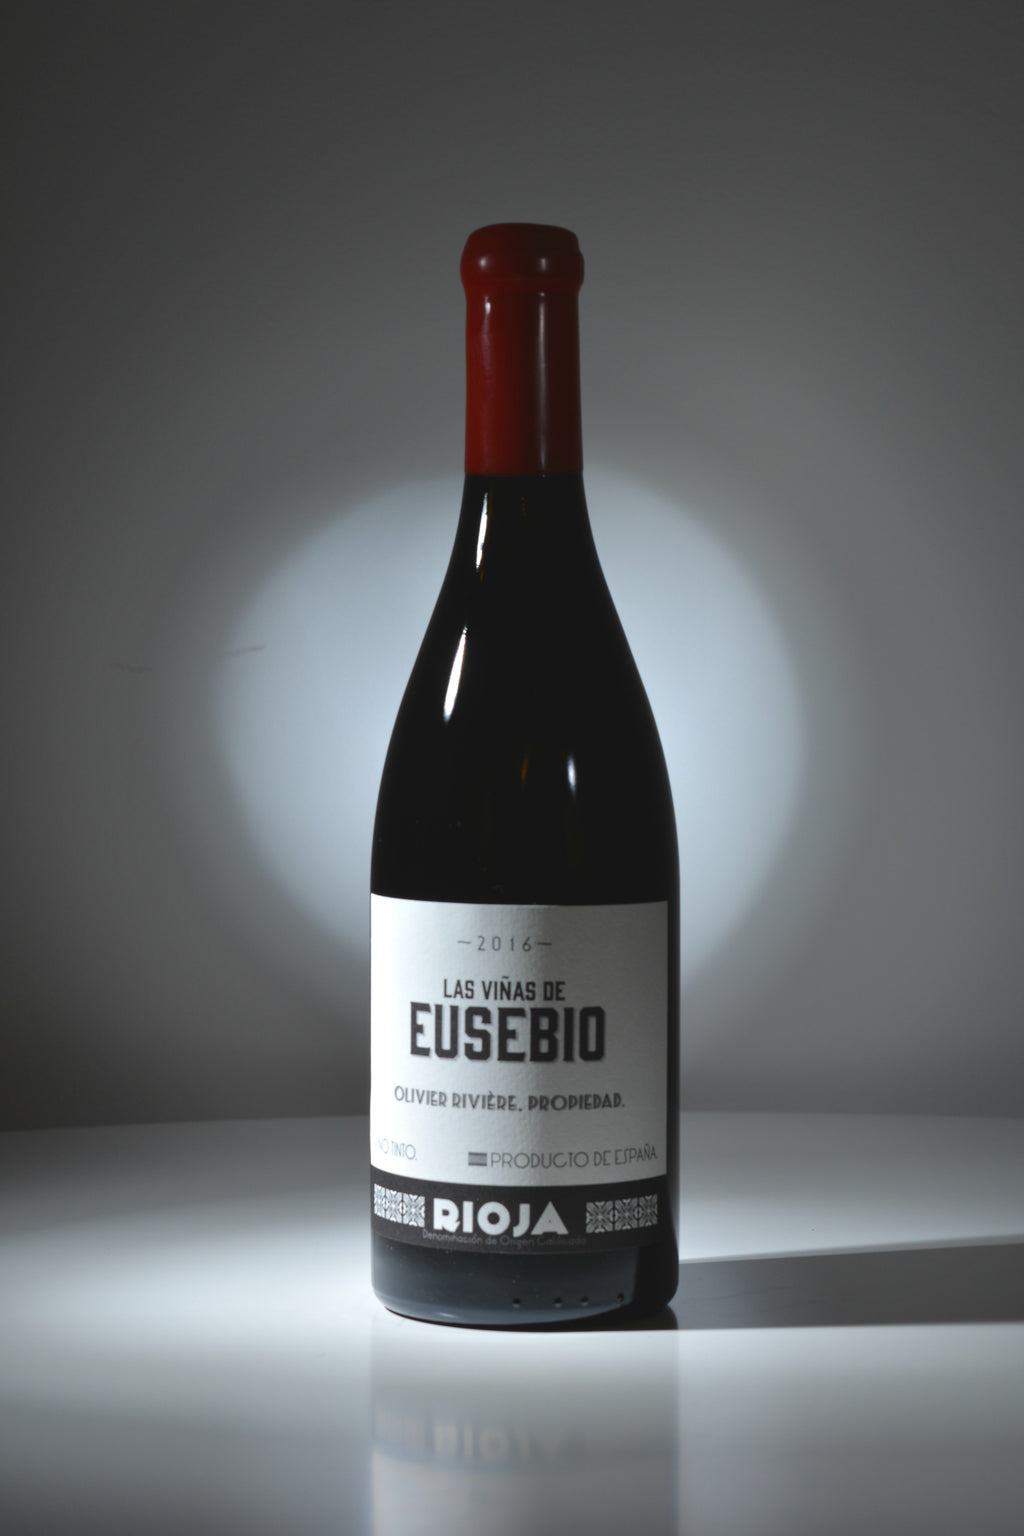 Las Viñas de Eusebio 2016 - The Royal Bottle